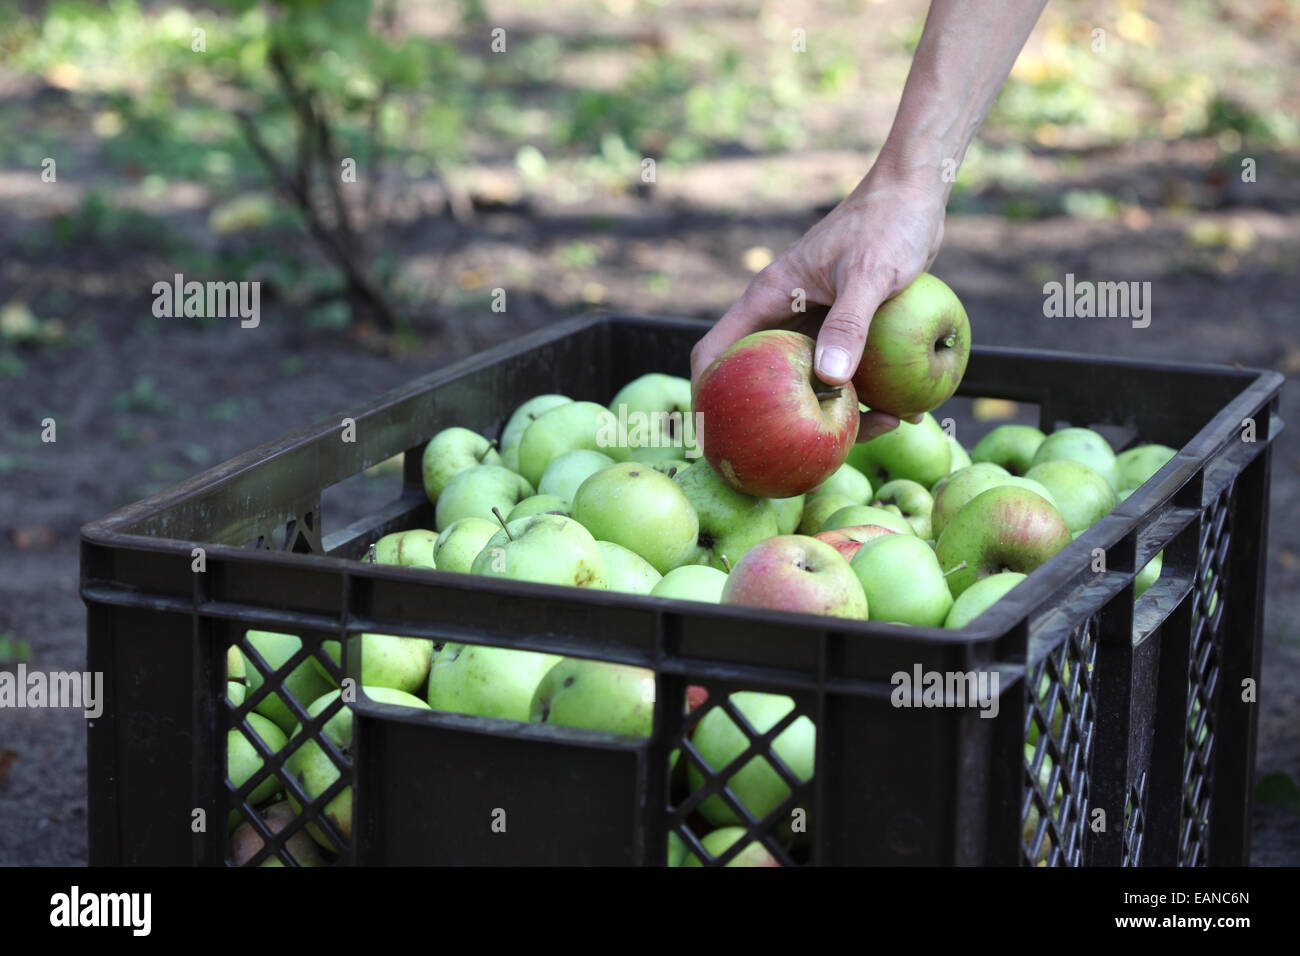 Close-up of a hand gathering apples in an urban gardening project - Stock Image